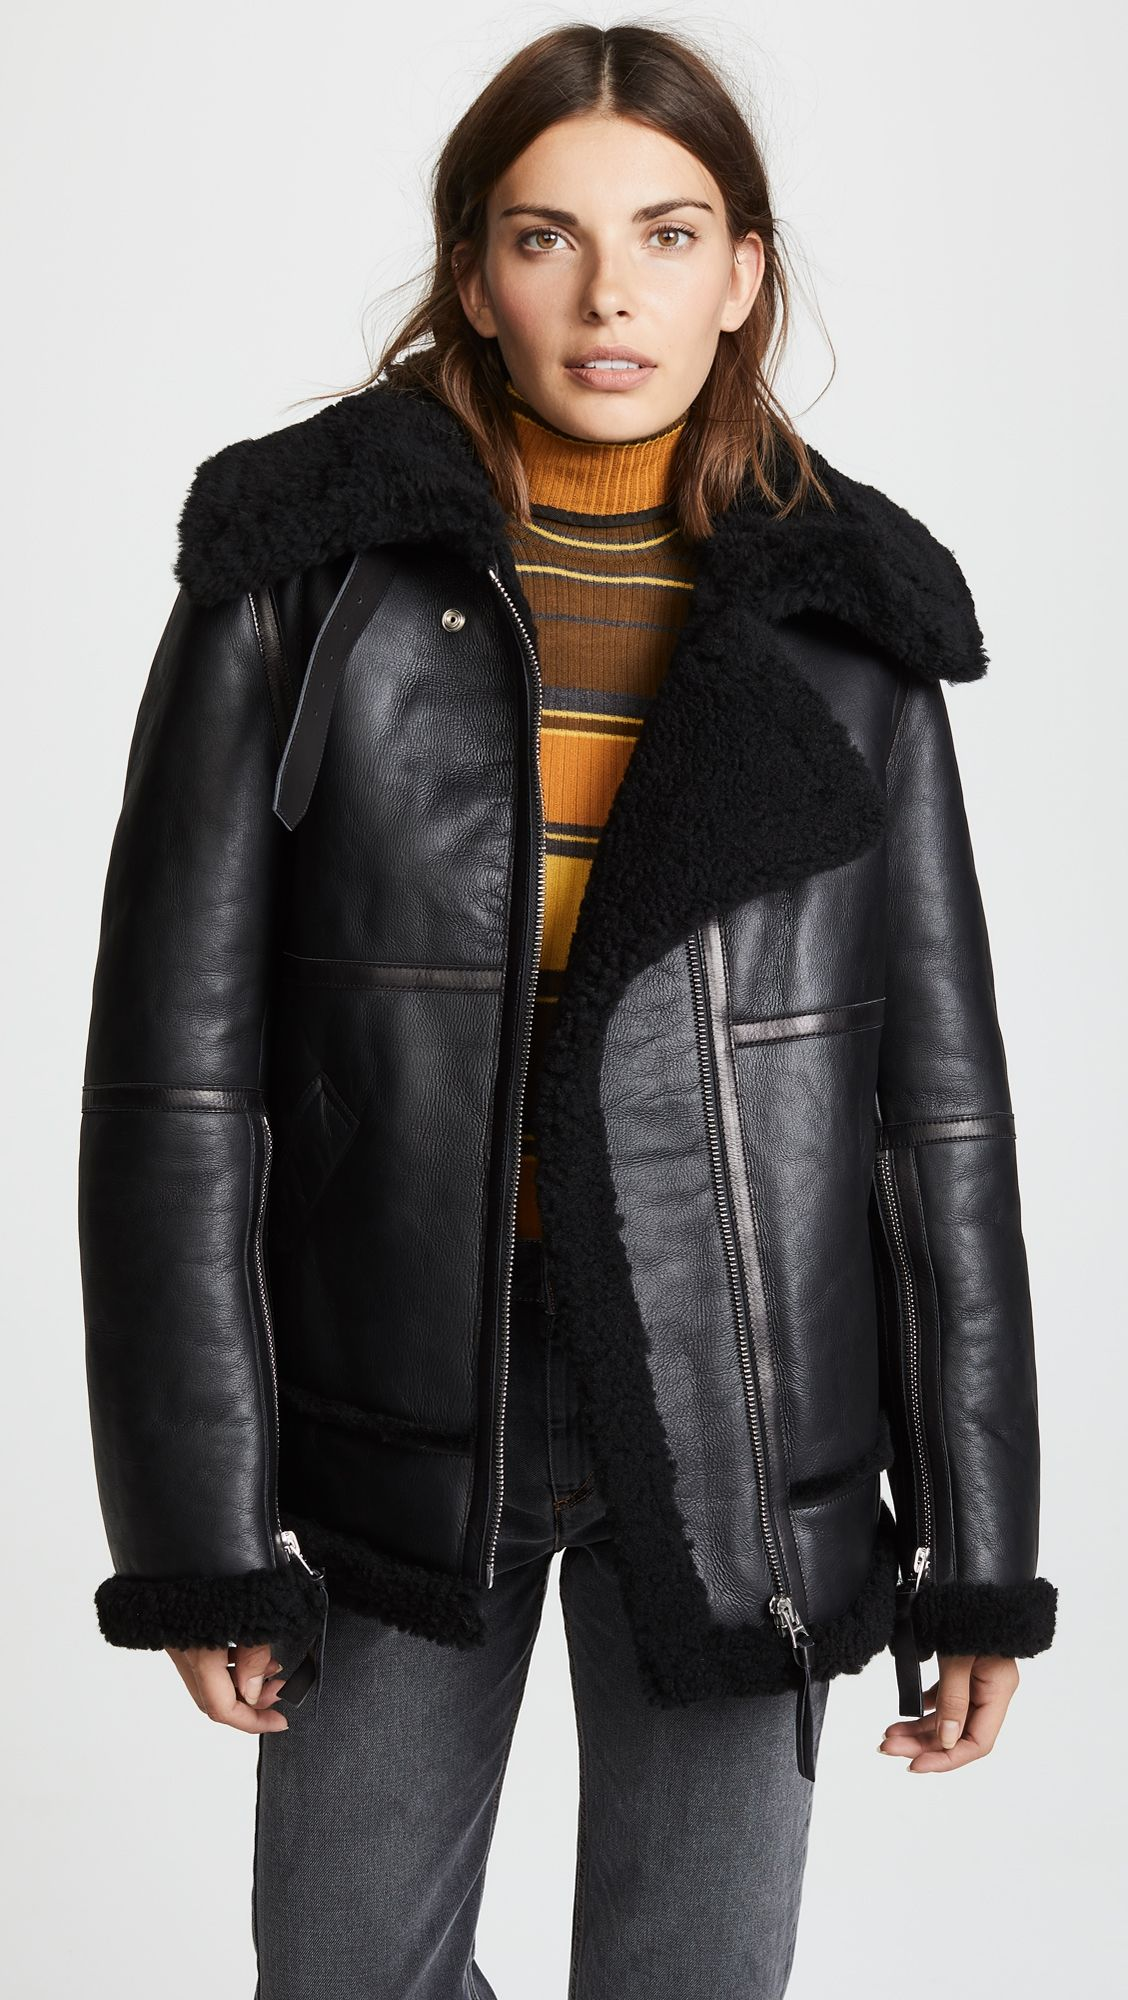 b81da690dd9a1f Shearling Leather Jacket in 2019 | Products | Jackets, Leather ...